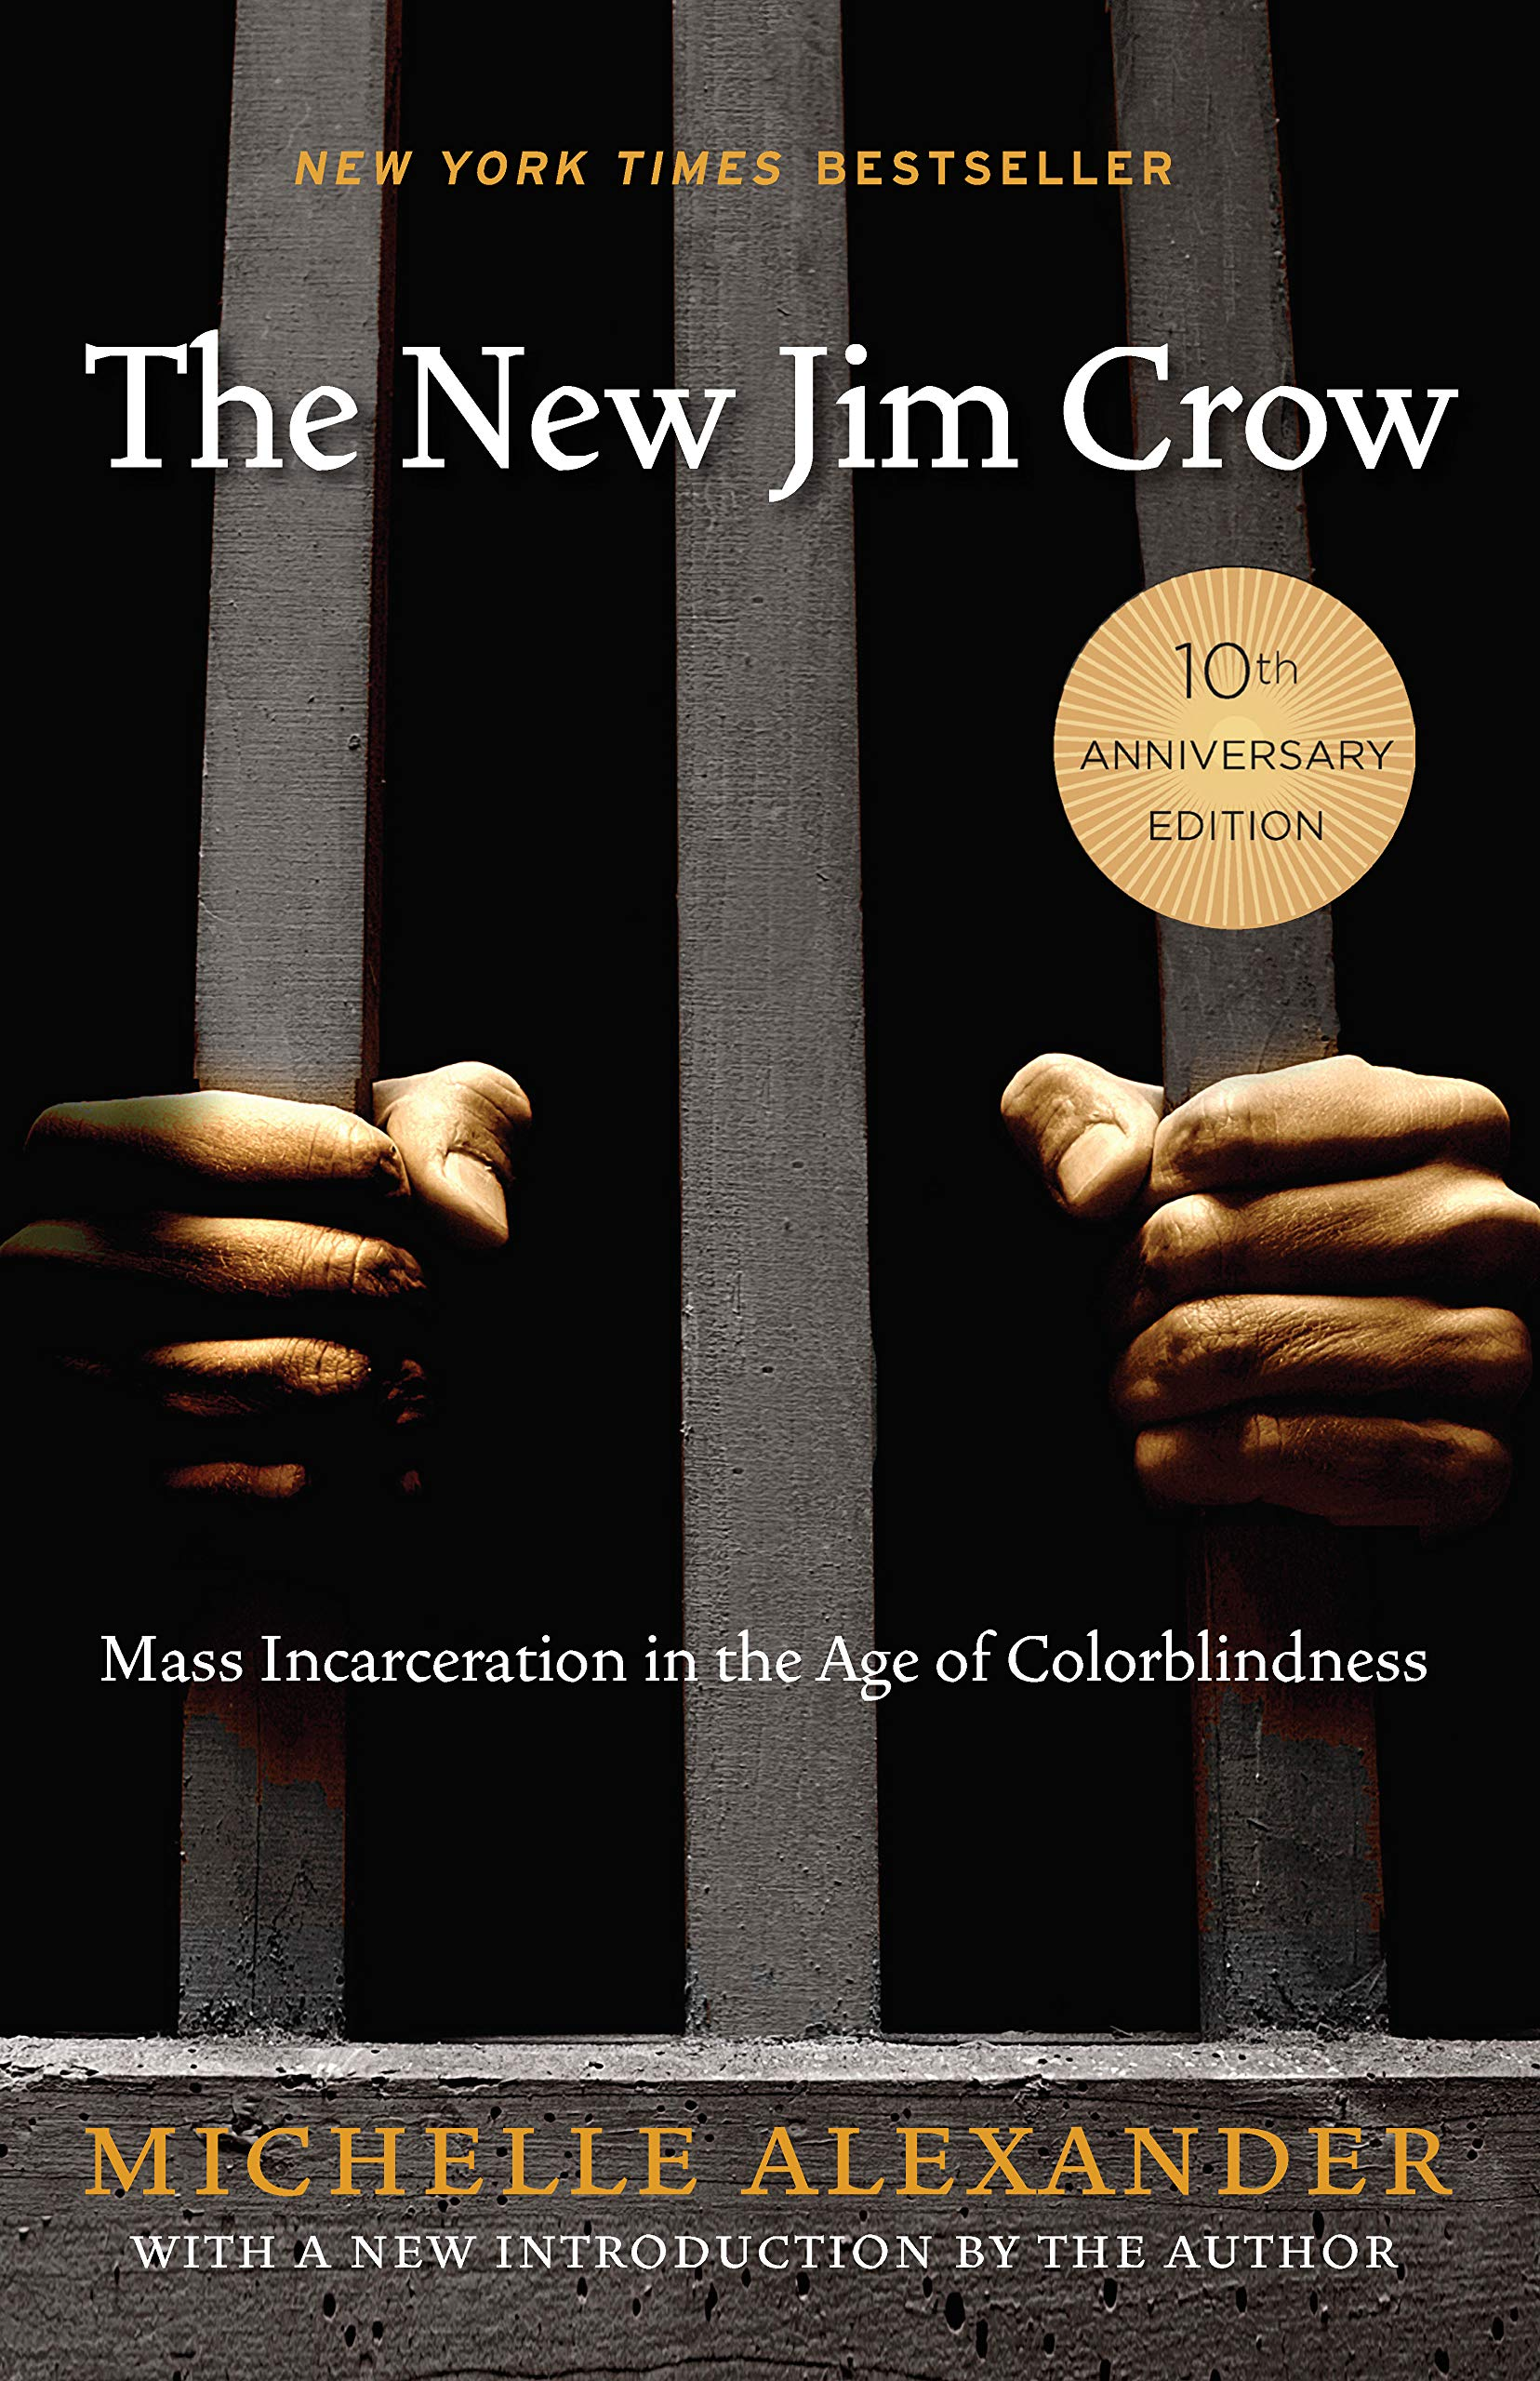 Image result for new jim crow